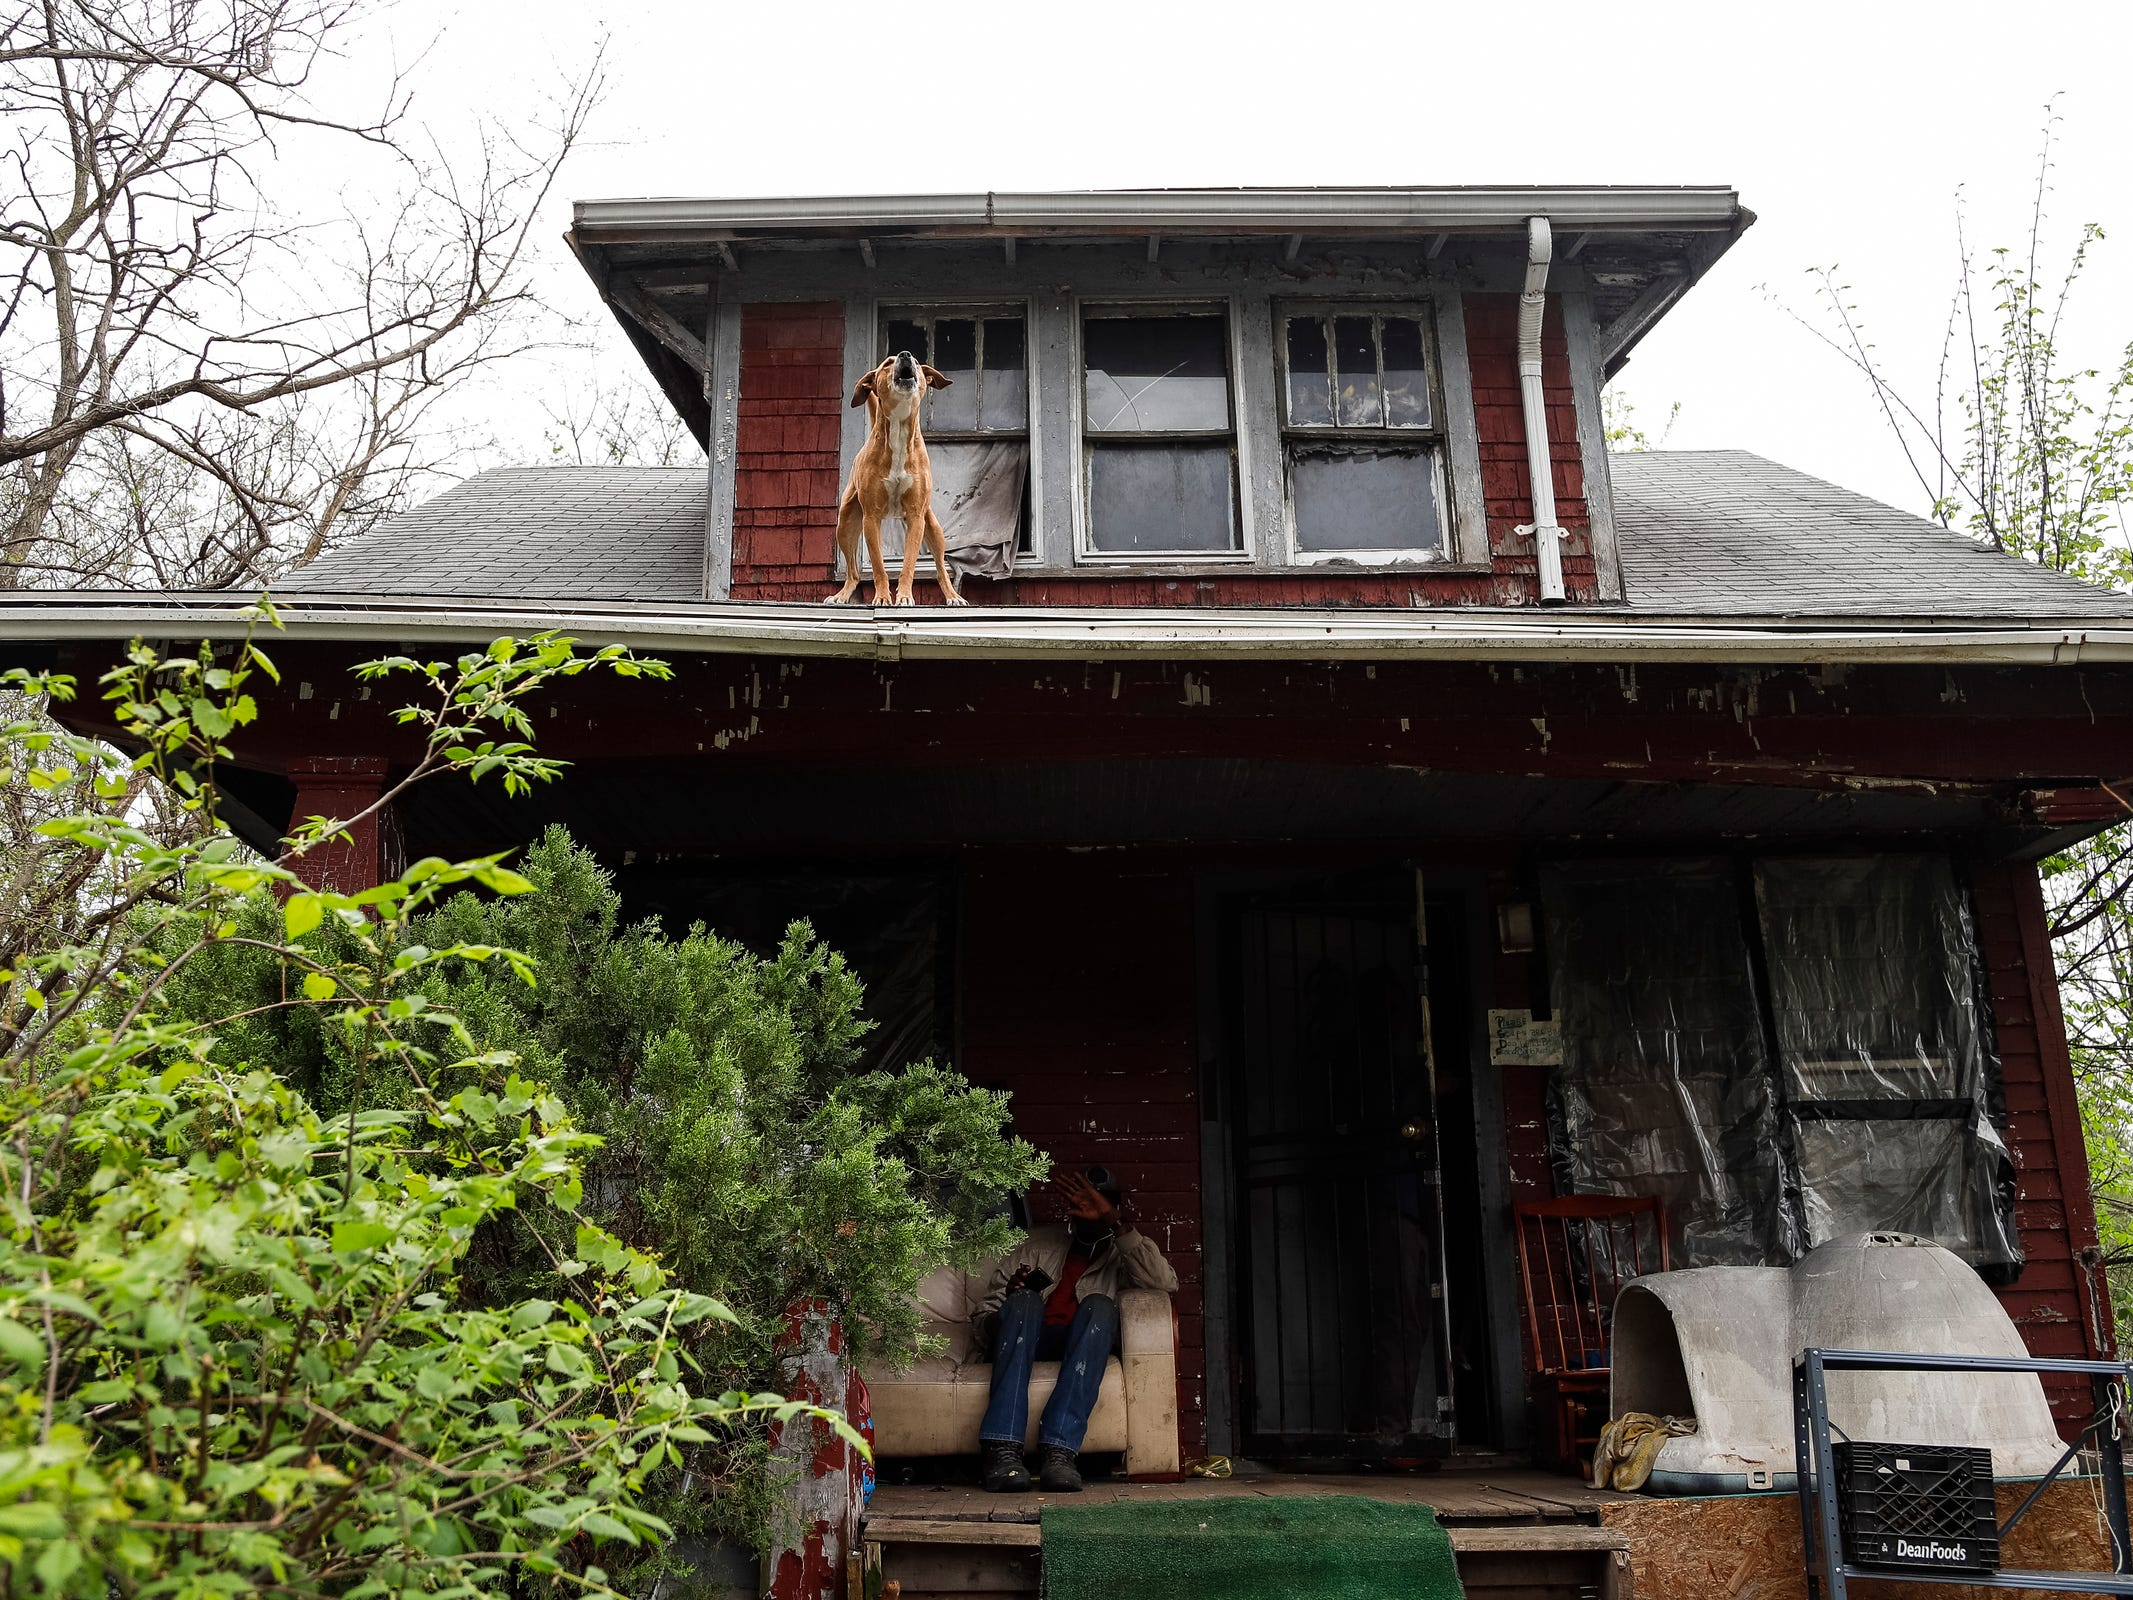 Sugar, a dog that belongs to an occupant of a land bank house in the 11400 block of Mendota, stands on a roof after jumping out of the second floor window on May 10, 2018.